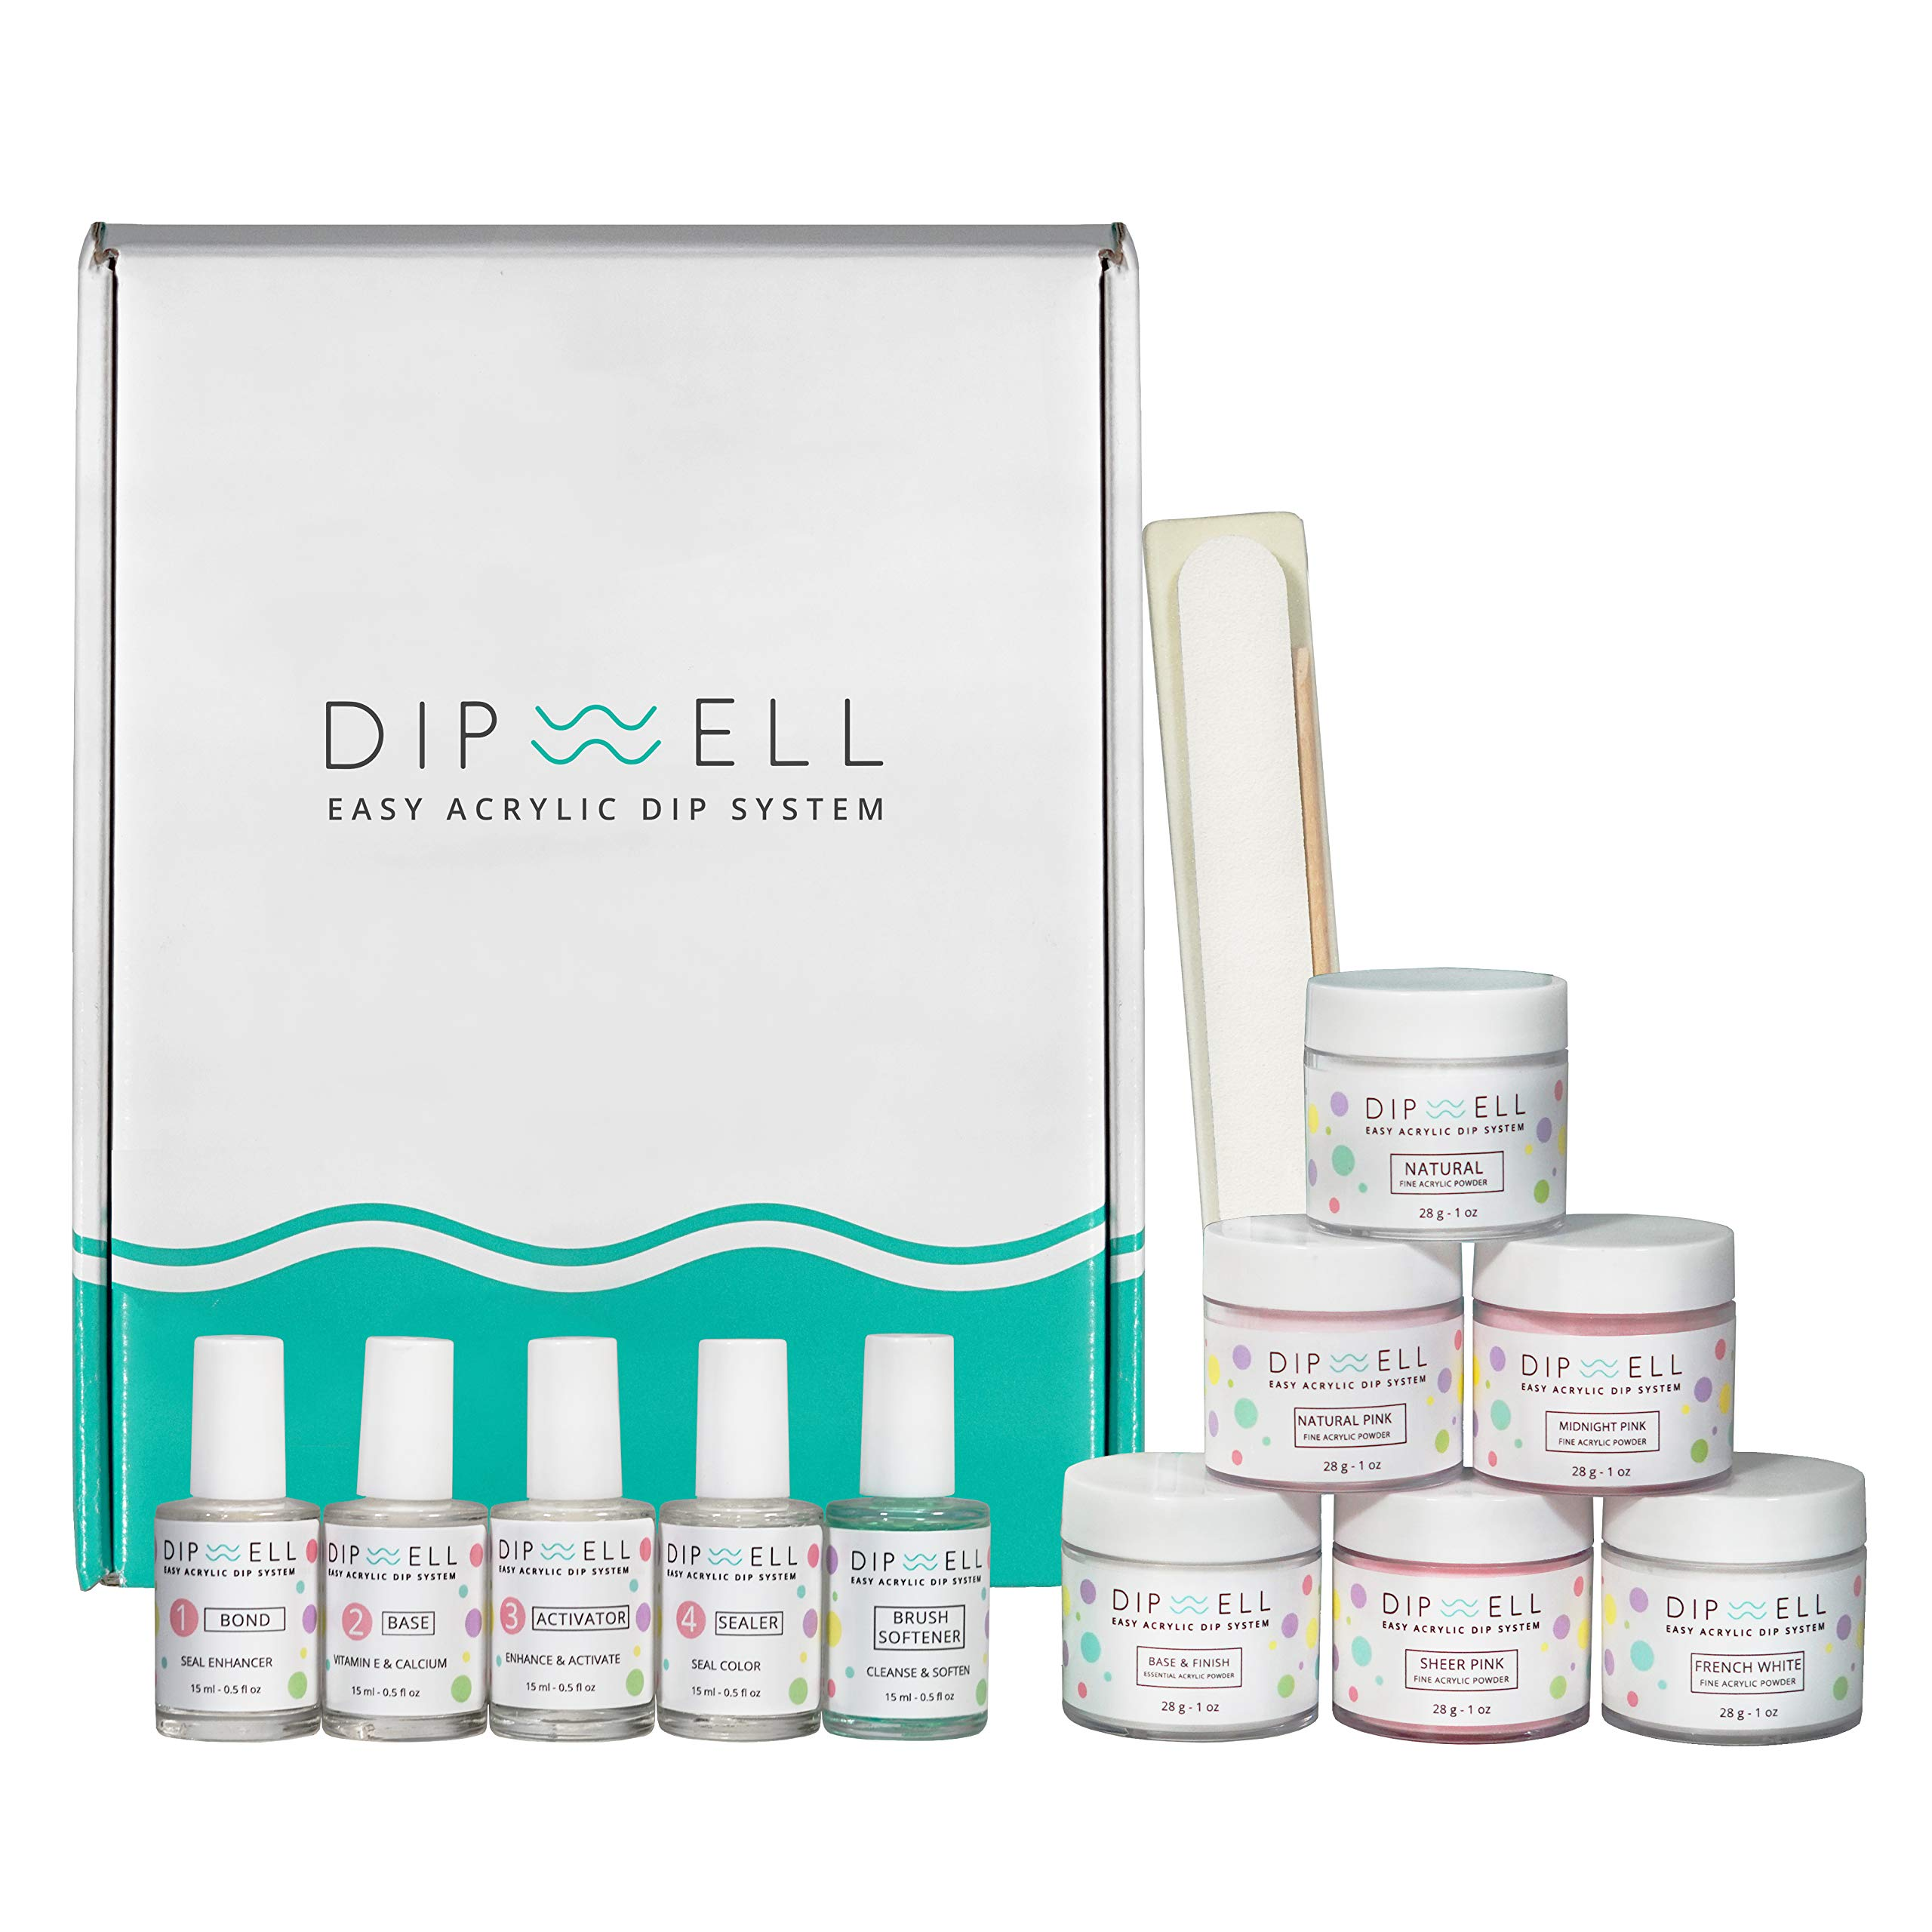 Dip Powder Nail Kit, Easy Acrylic Dipping and Gel Resin For Dip, Full System For French or Natural Set by DipWell Nails (Bond, Base, Activator, Sealer, Brush Softener + 6 Powder)